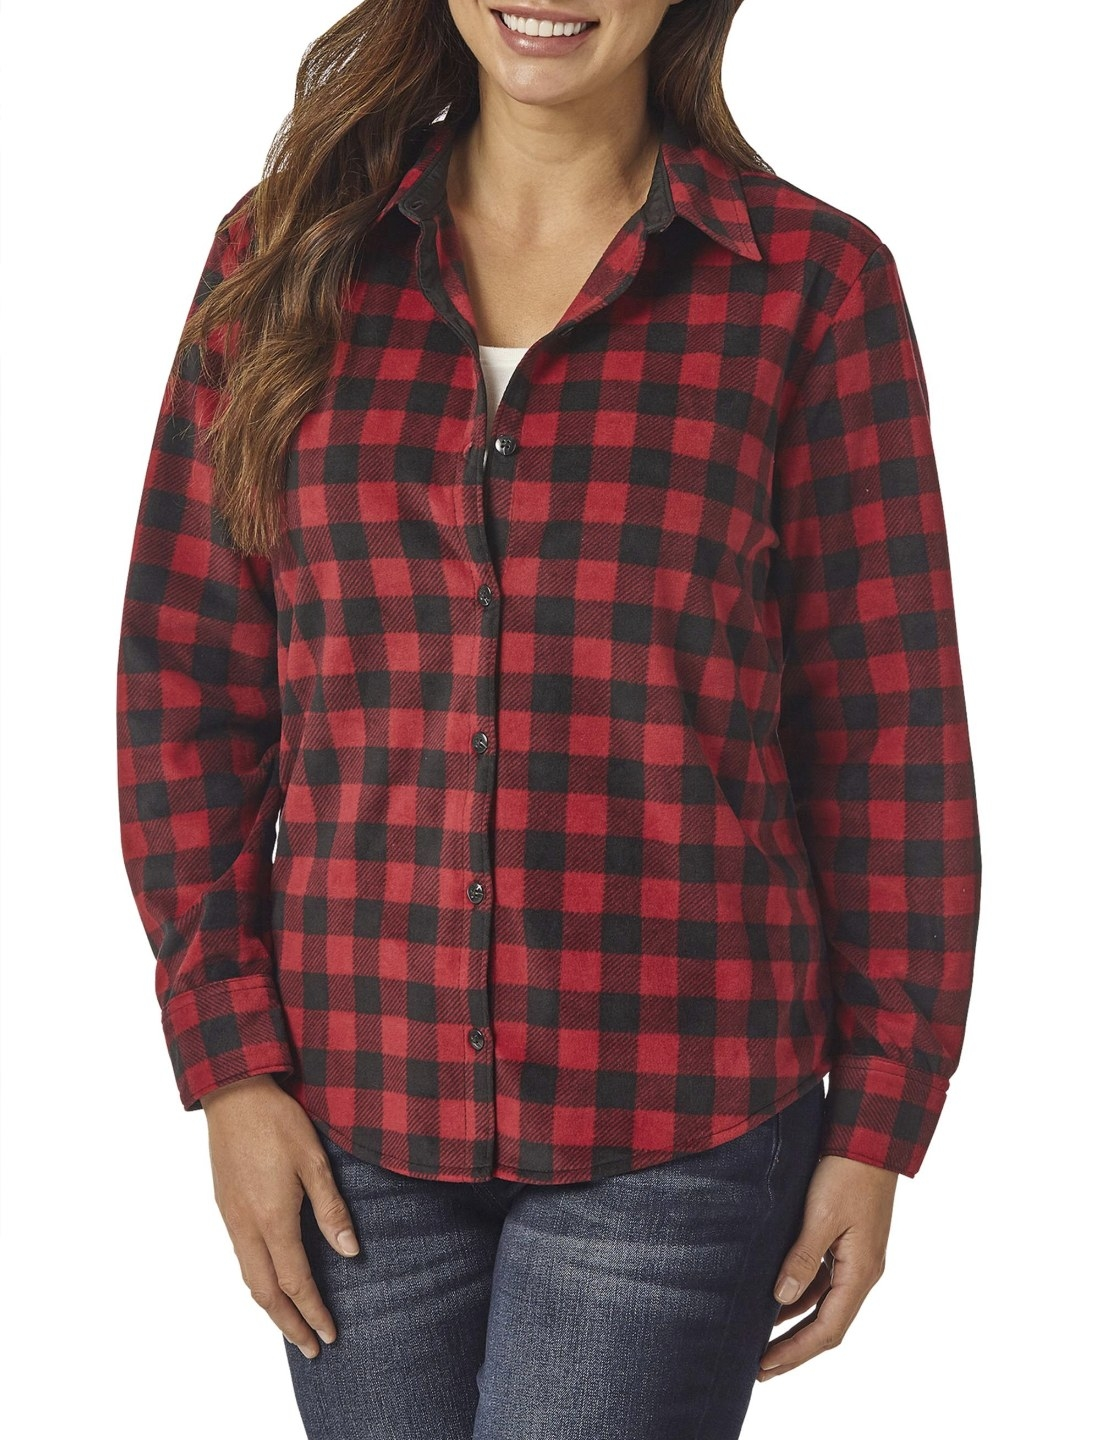 Model in the red and black checked flannel